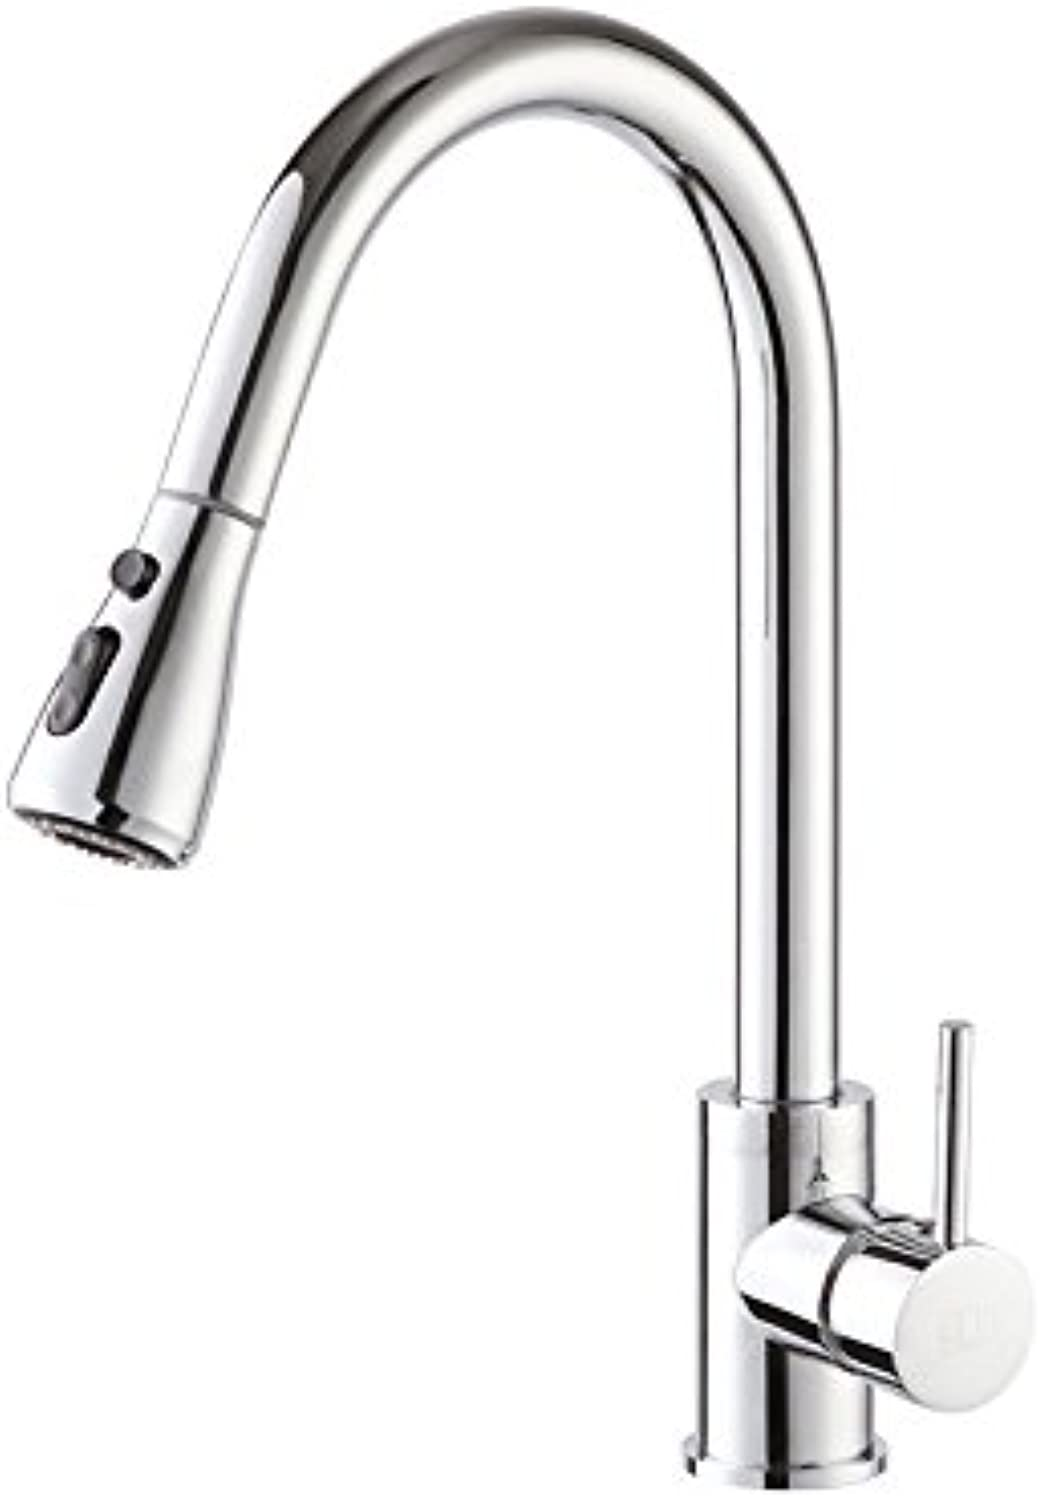 Bijjaladeva Antique Bathroom Sink Vessel Faucet Basin Mixer Tap Kitchen faucet pull-out of the water turn hot and cold plating